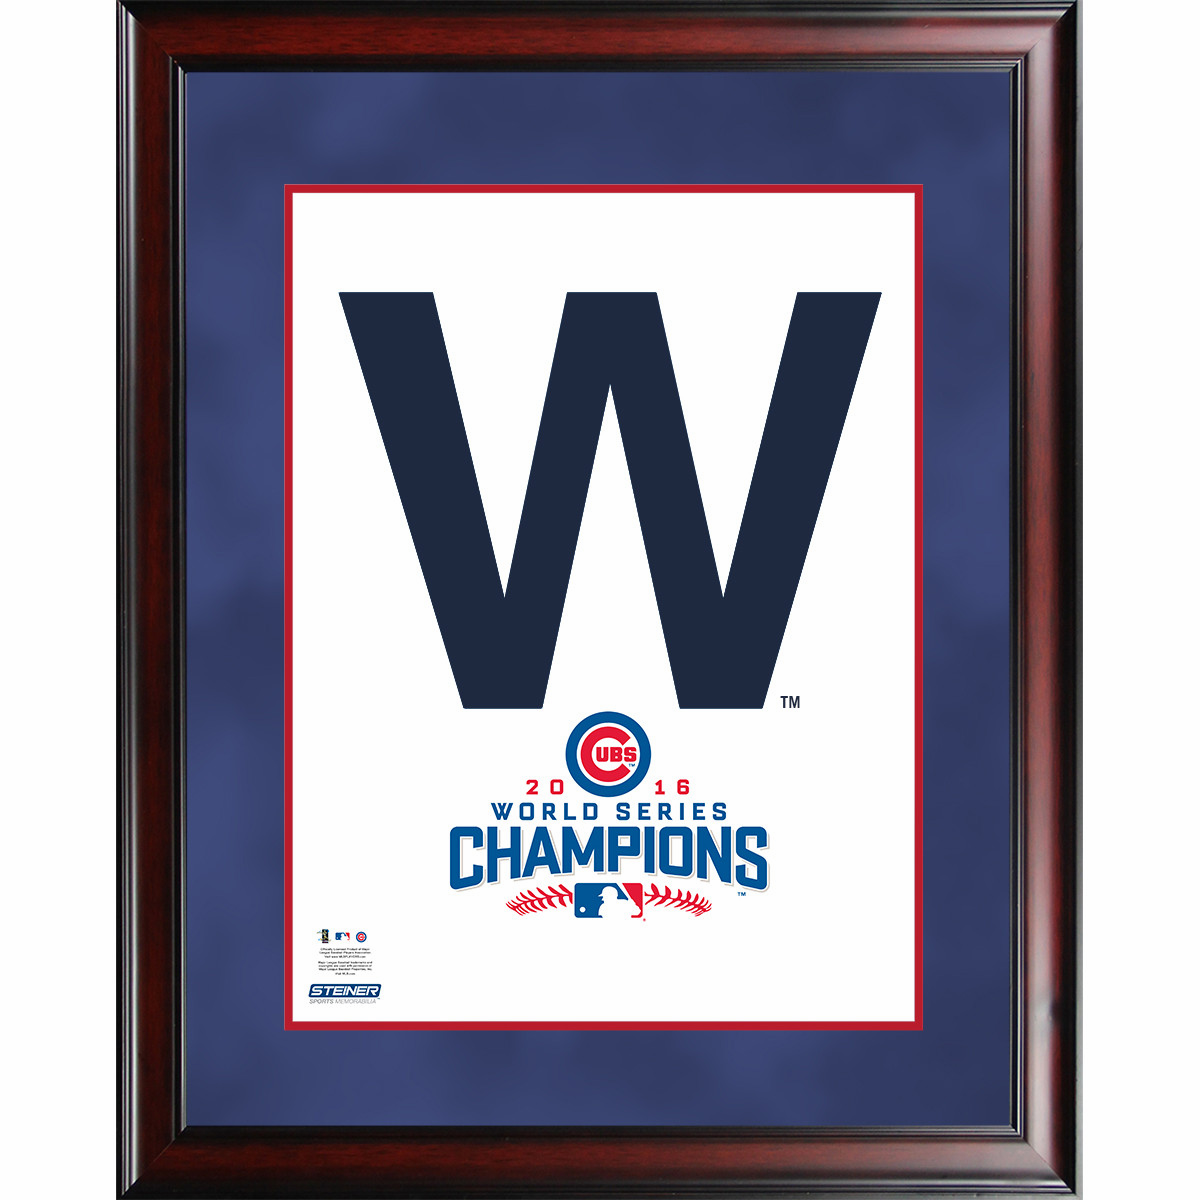 """Chicago Cubs 2016 World Series Champions 16"""" x 20"""" """"The W"""" Framed Collage by Steiner"""